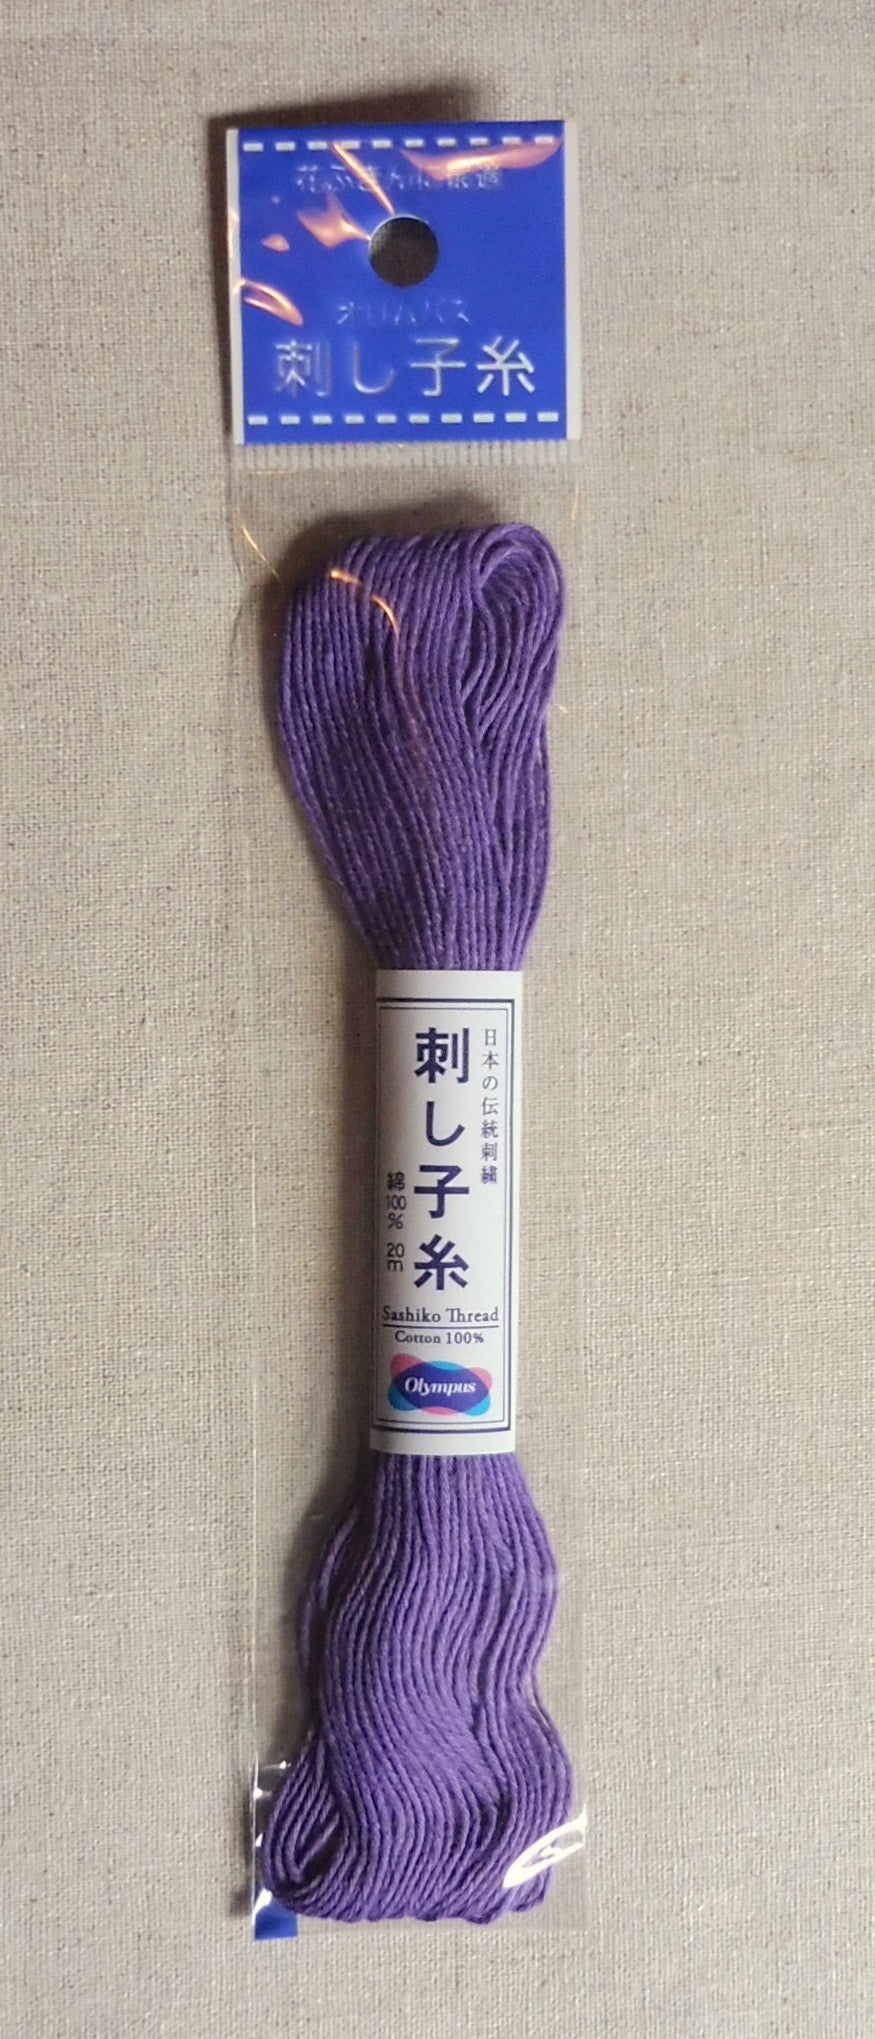 Sashiko Thread - 20 m. of Thick Purple